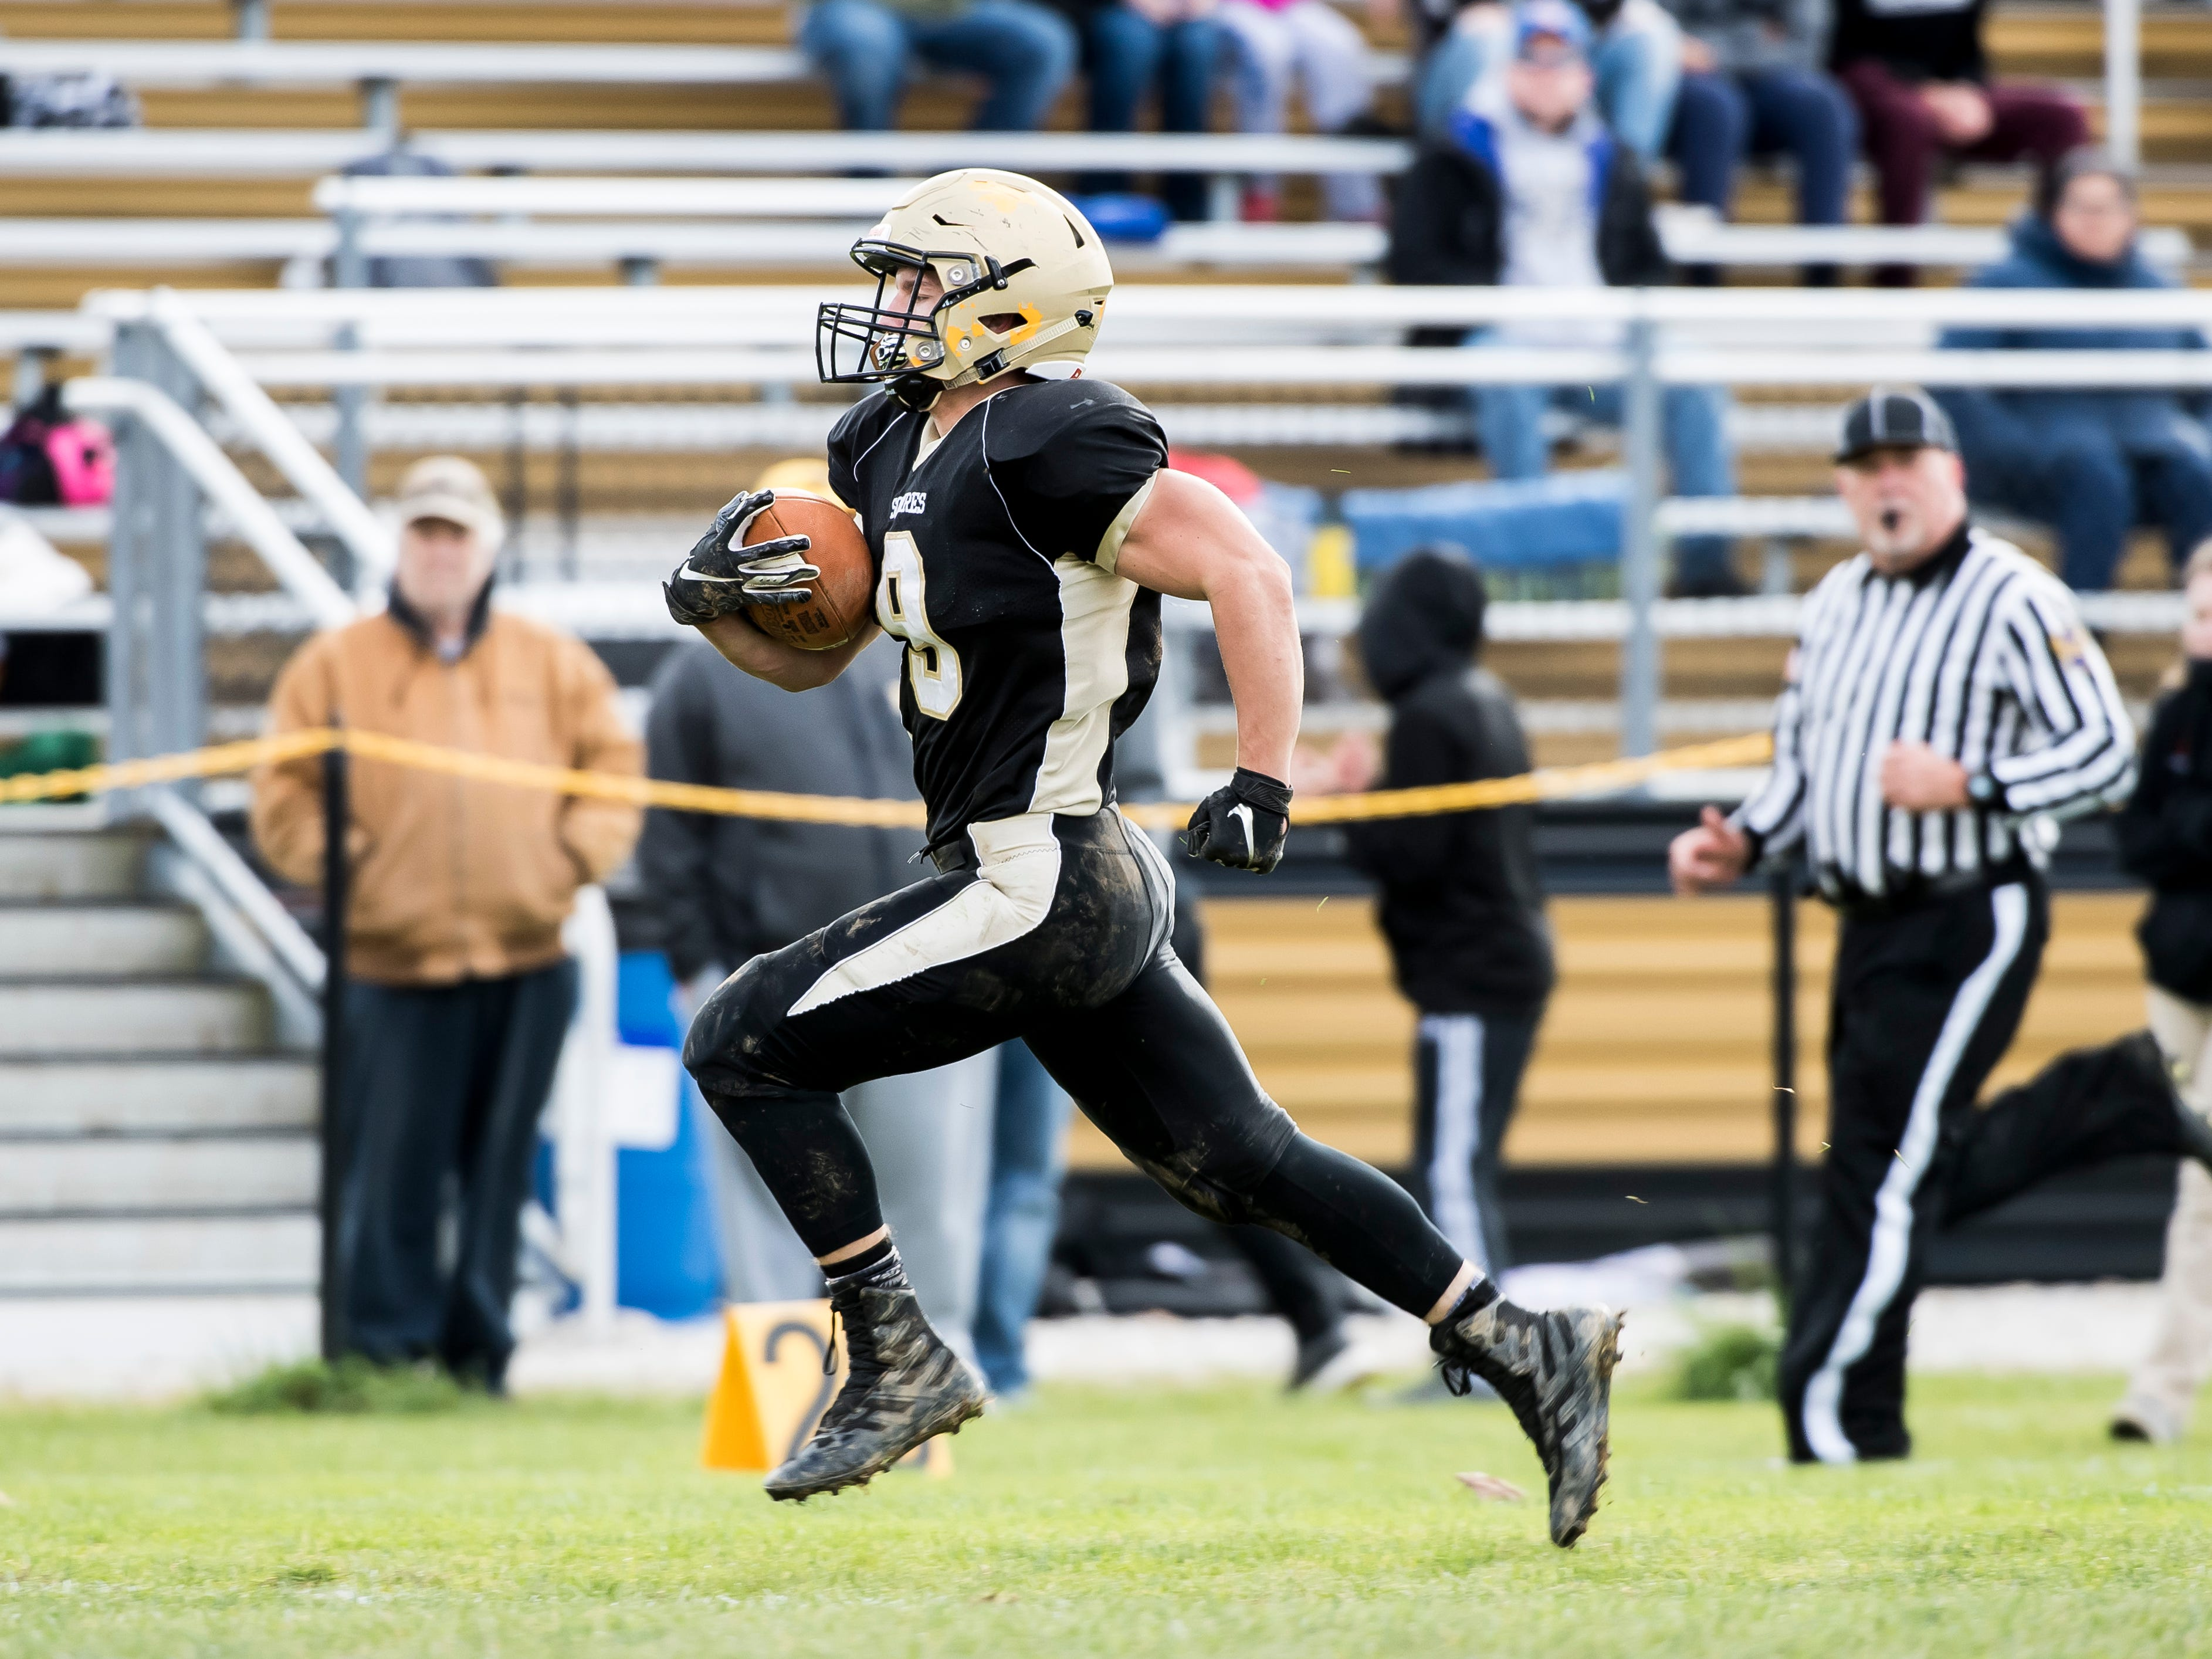 Delone Catholic's Logan Brown takes off for the end zone during a District III Class 2A semifinal game against Upper Dauphin on Saturday, November 3, 2018. The Squires won 48-23.